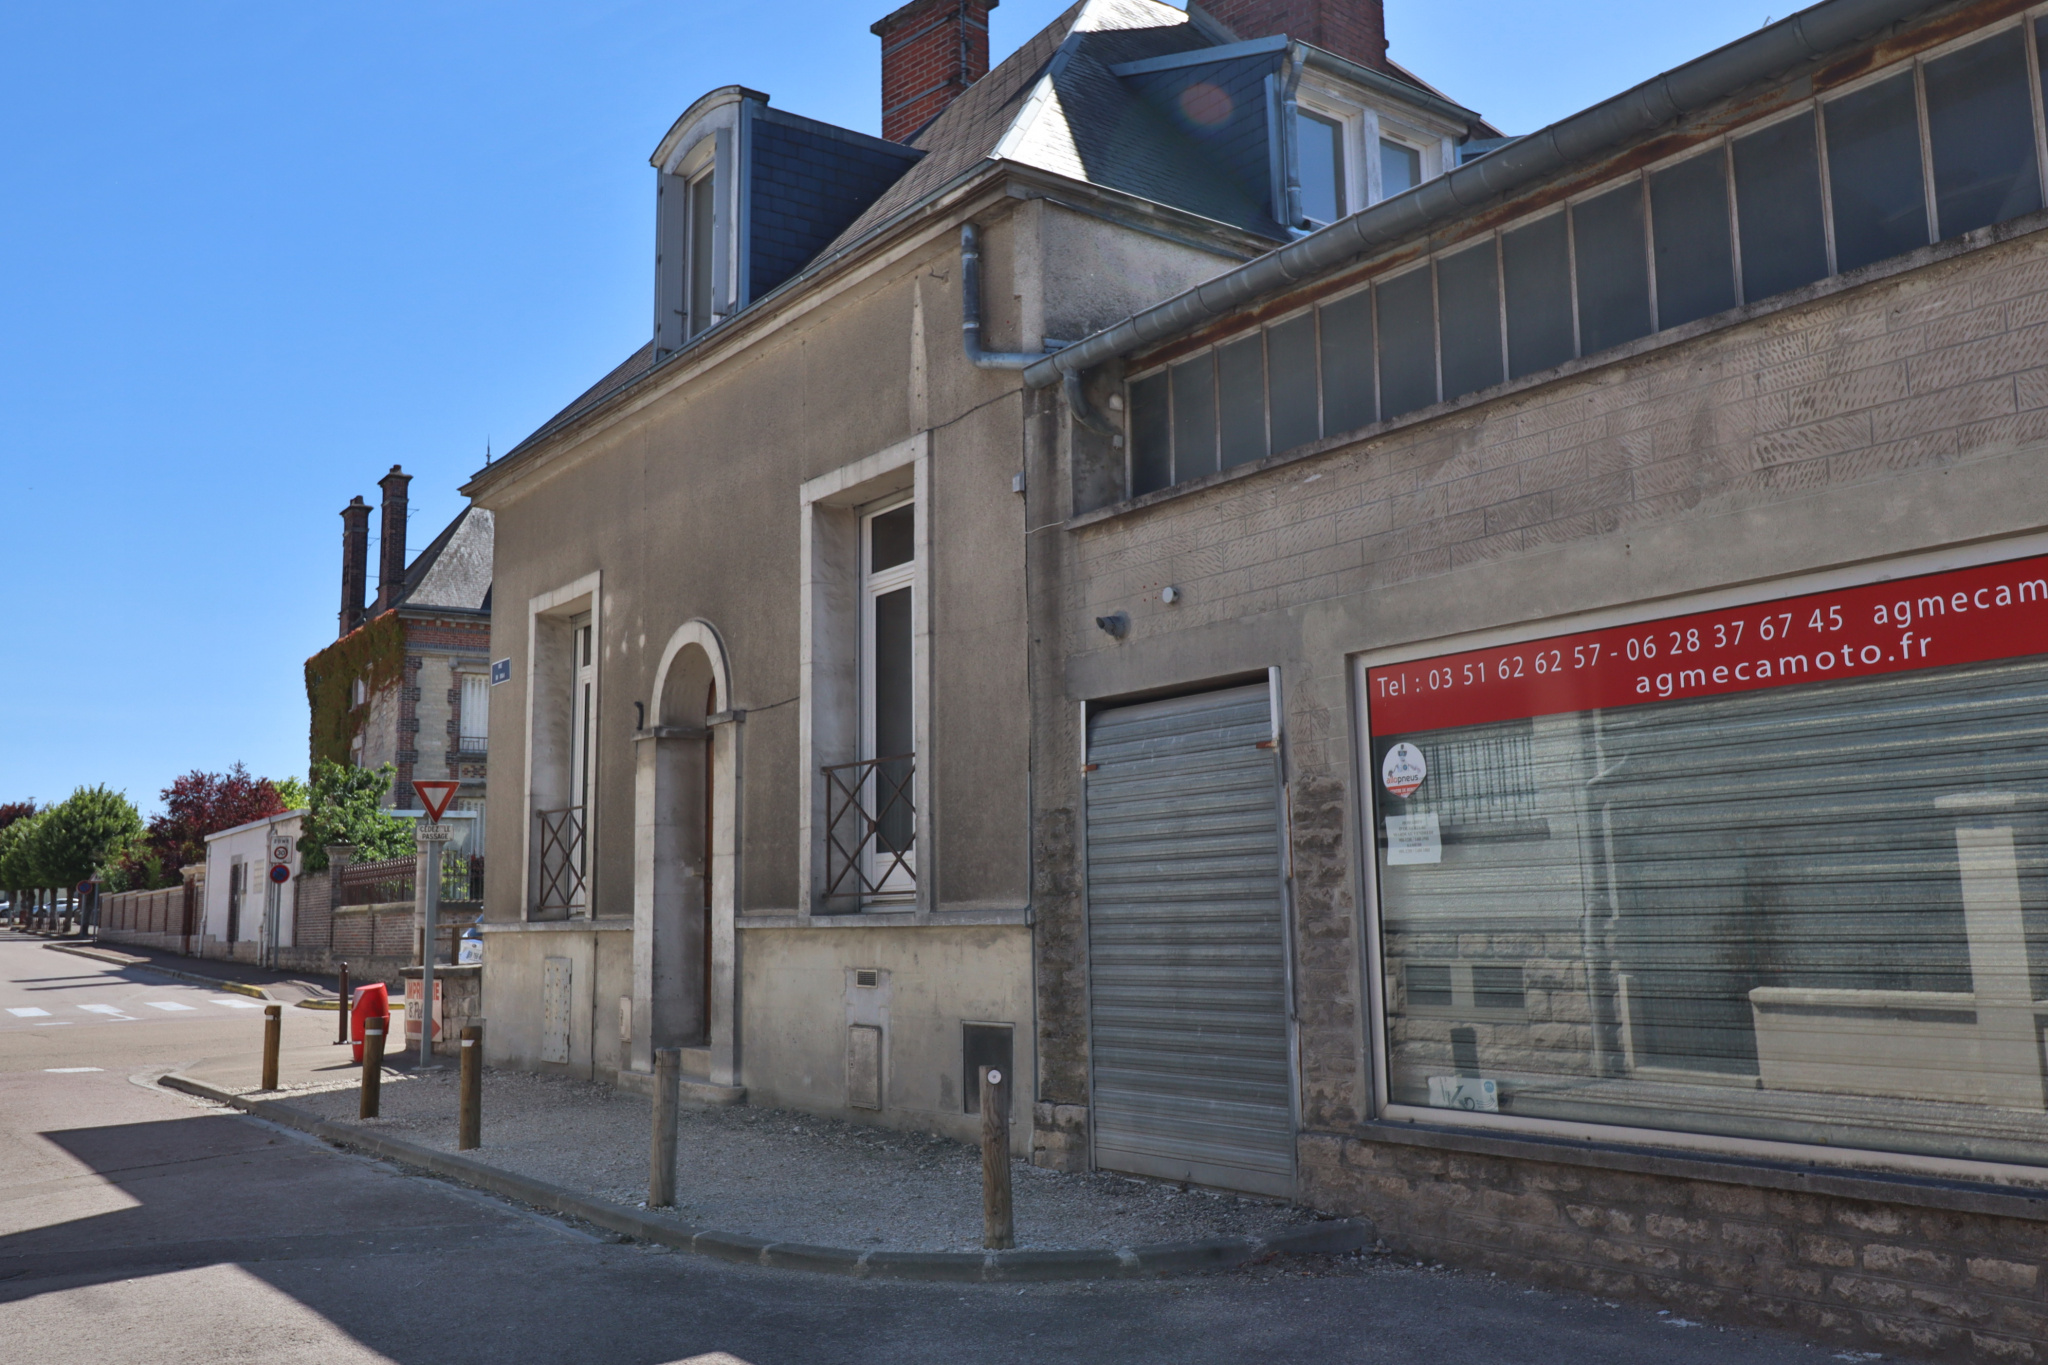 Damonte Achat local commercial - Réf n° 1_18996